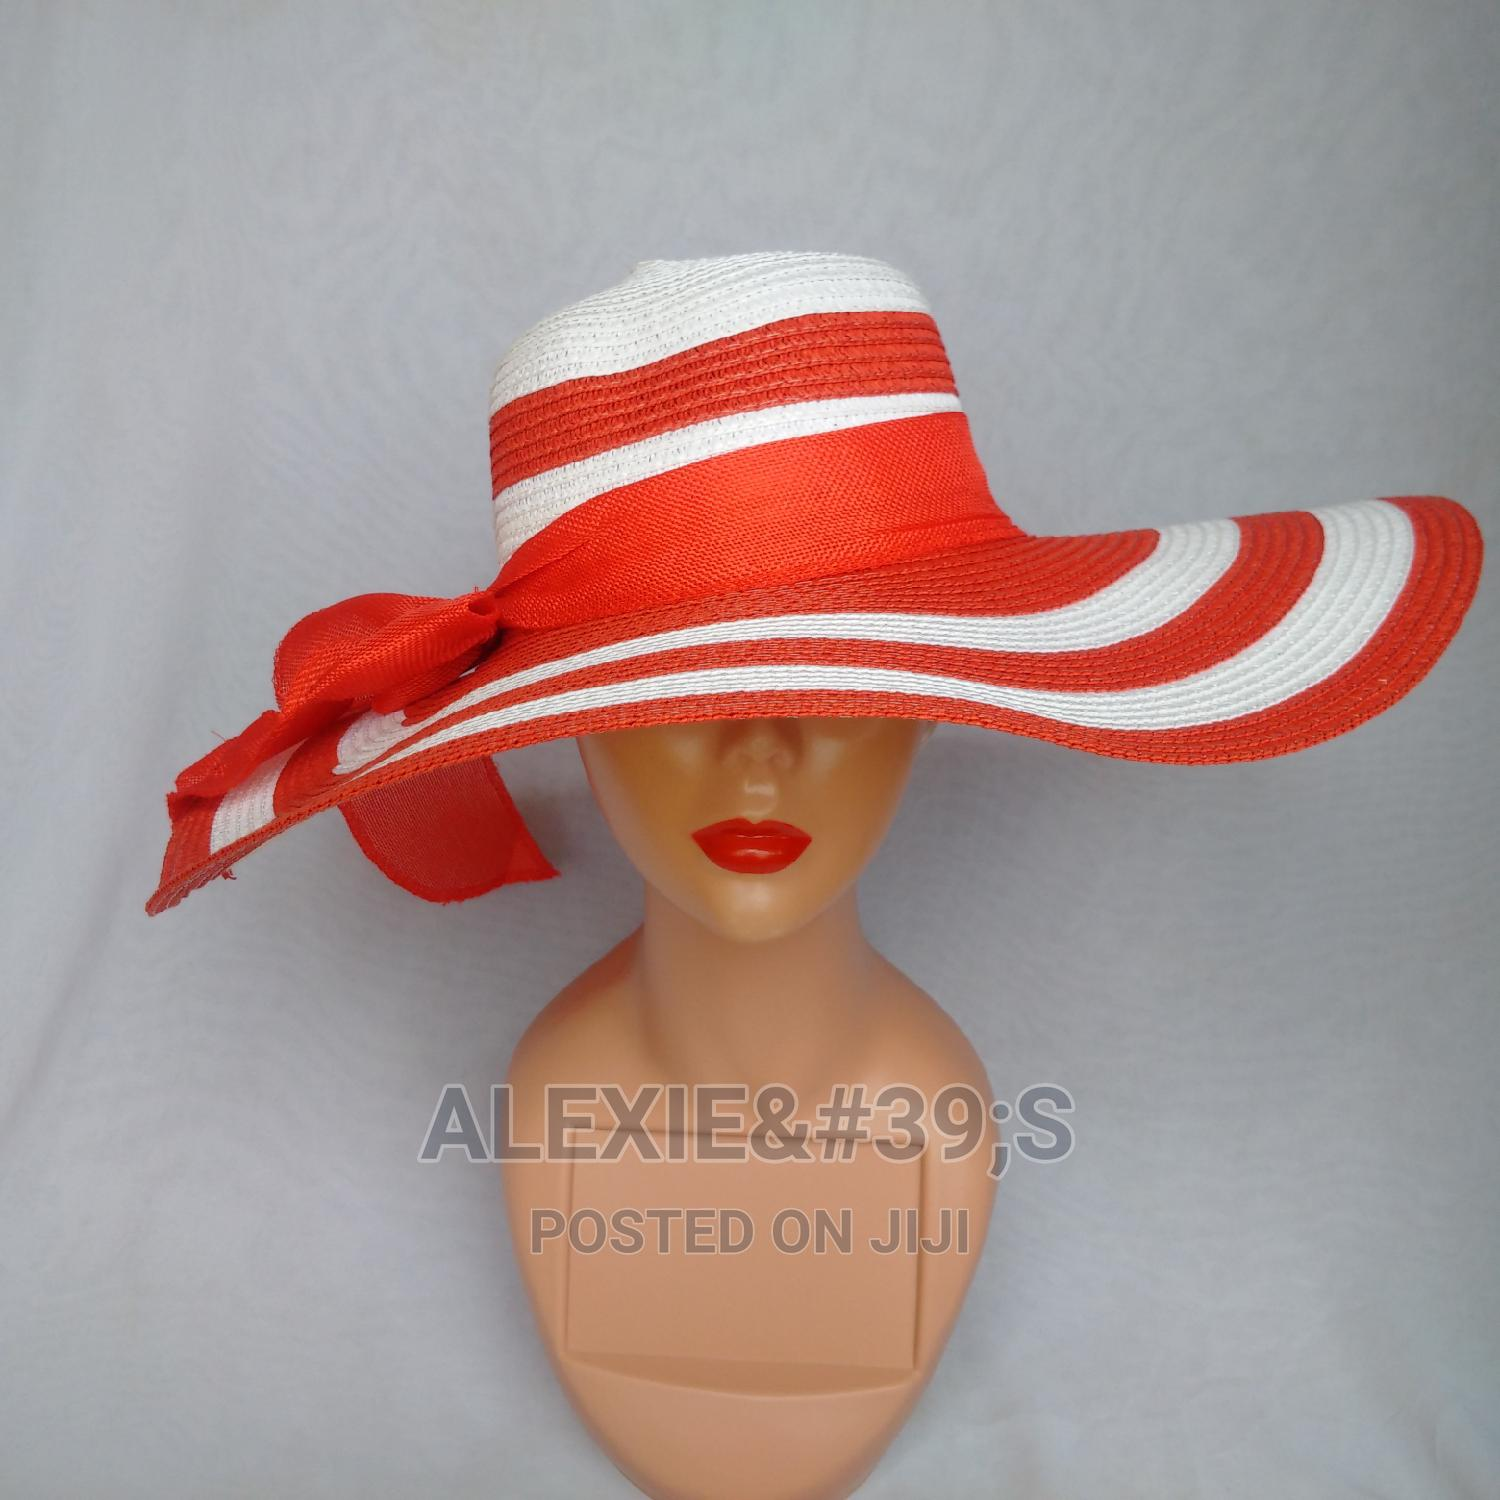 Rainbow Beach Hat for Women - White and Red | Clothing Accessories for sale in Kubwa, Abuja (FCT) State, Nigeria